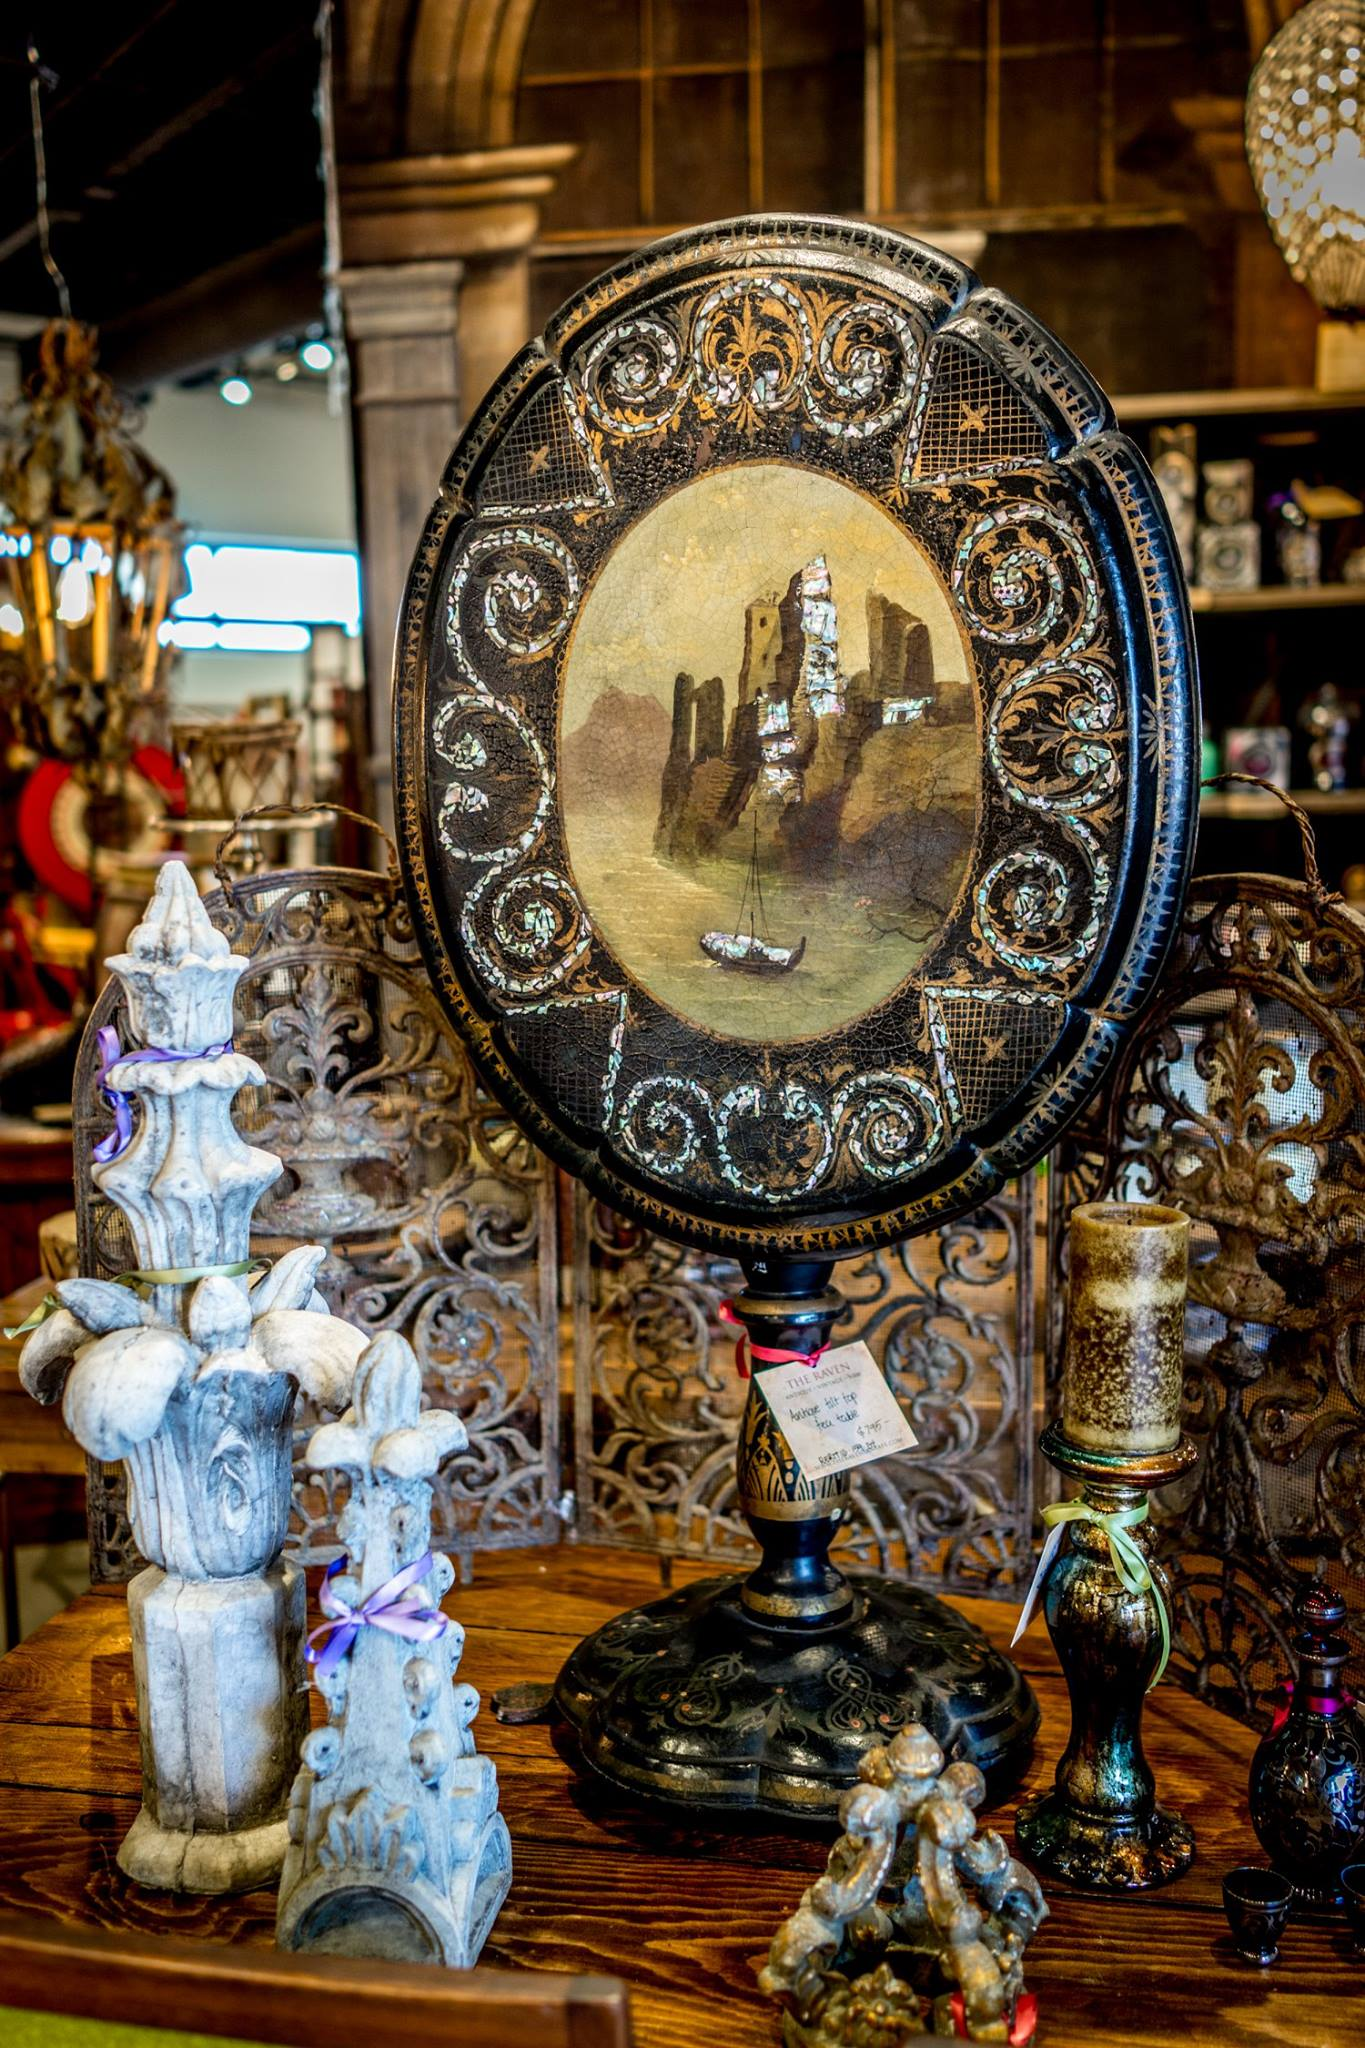 Furniture Antique Vintage New Consignment The Raven